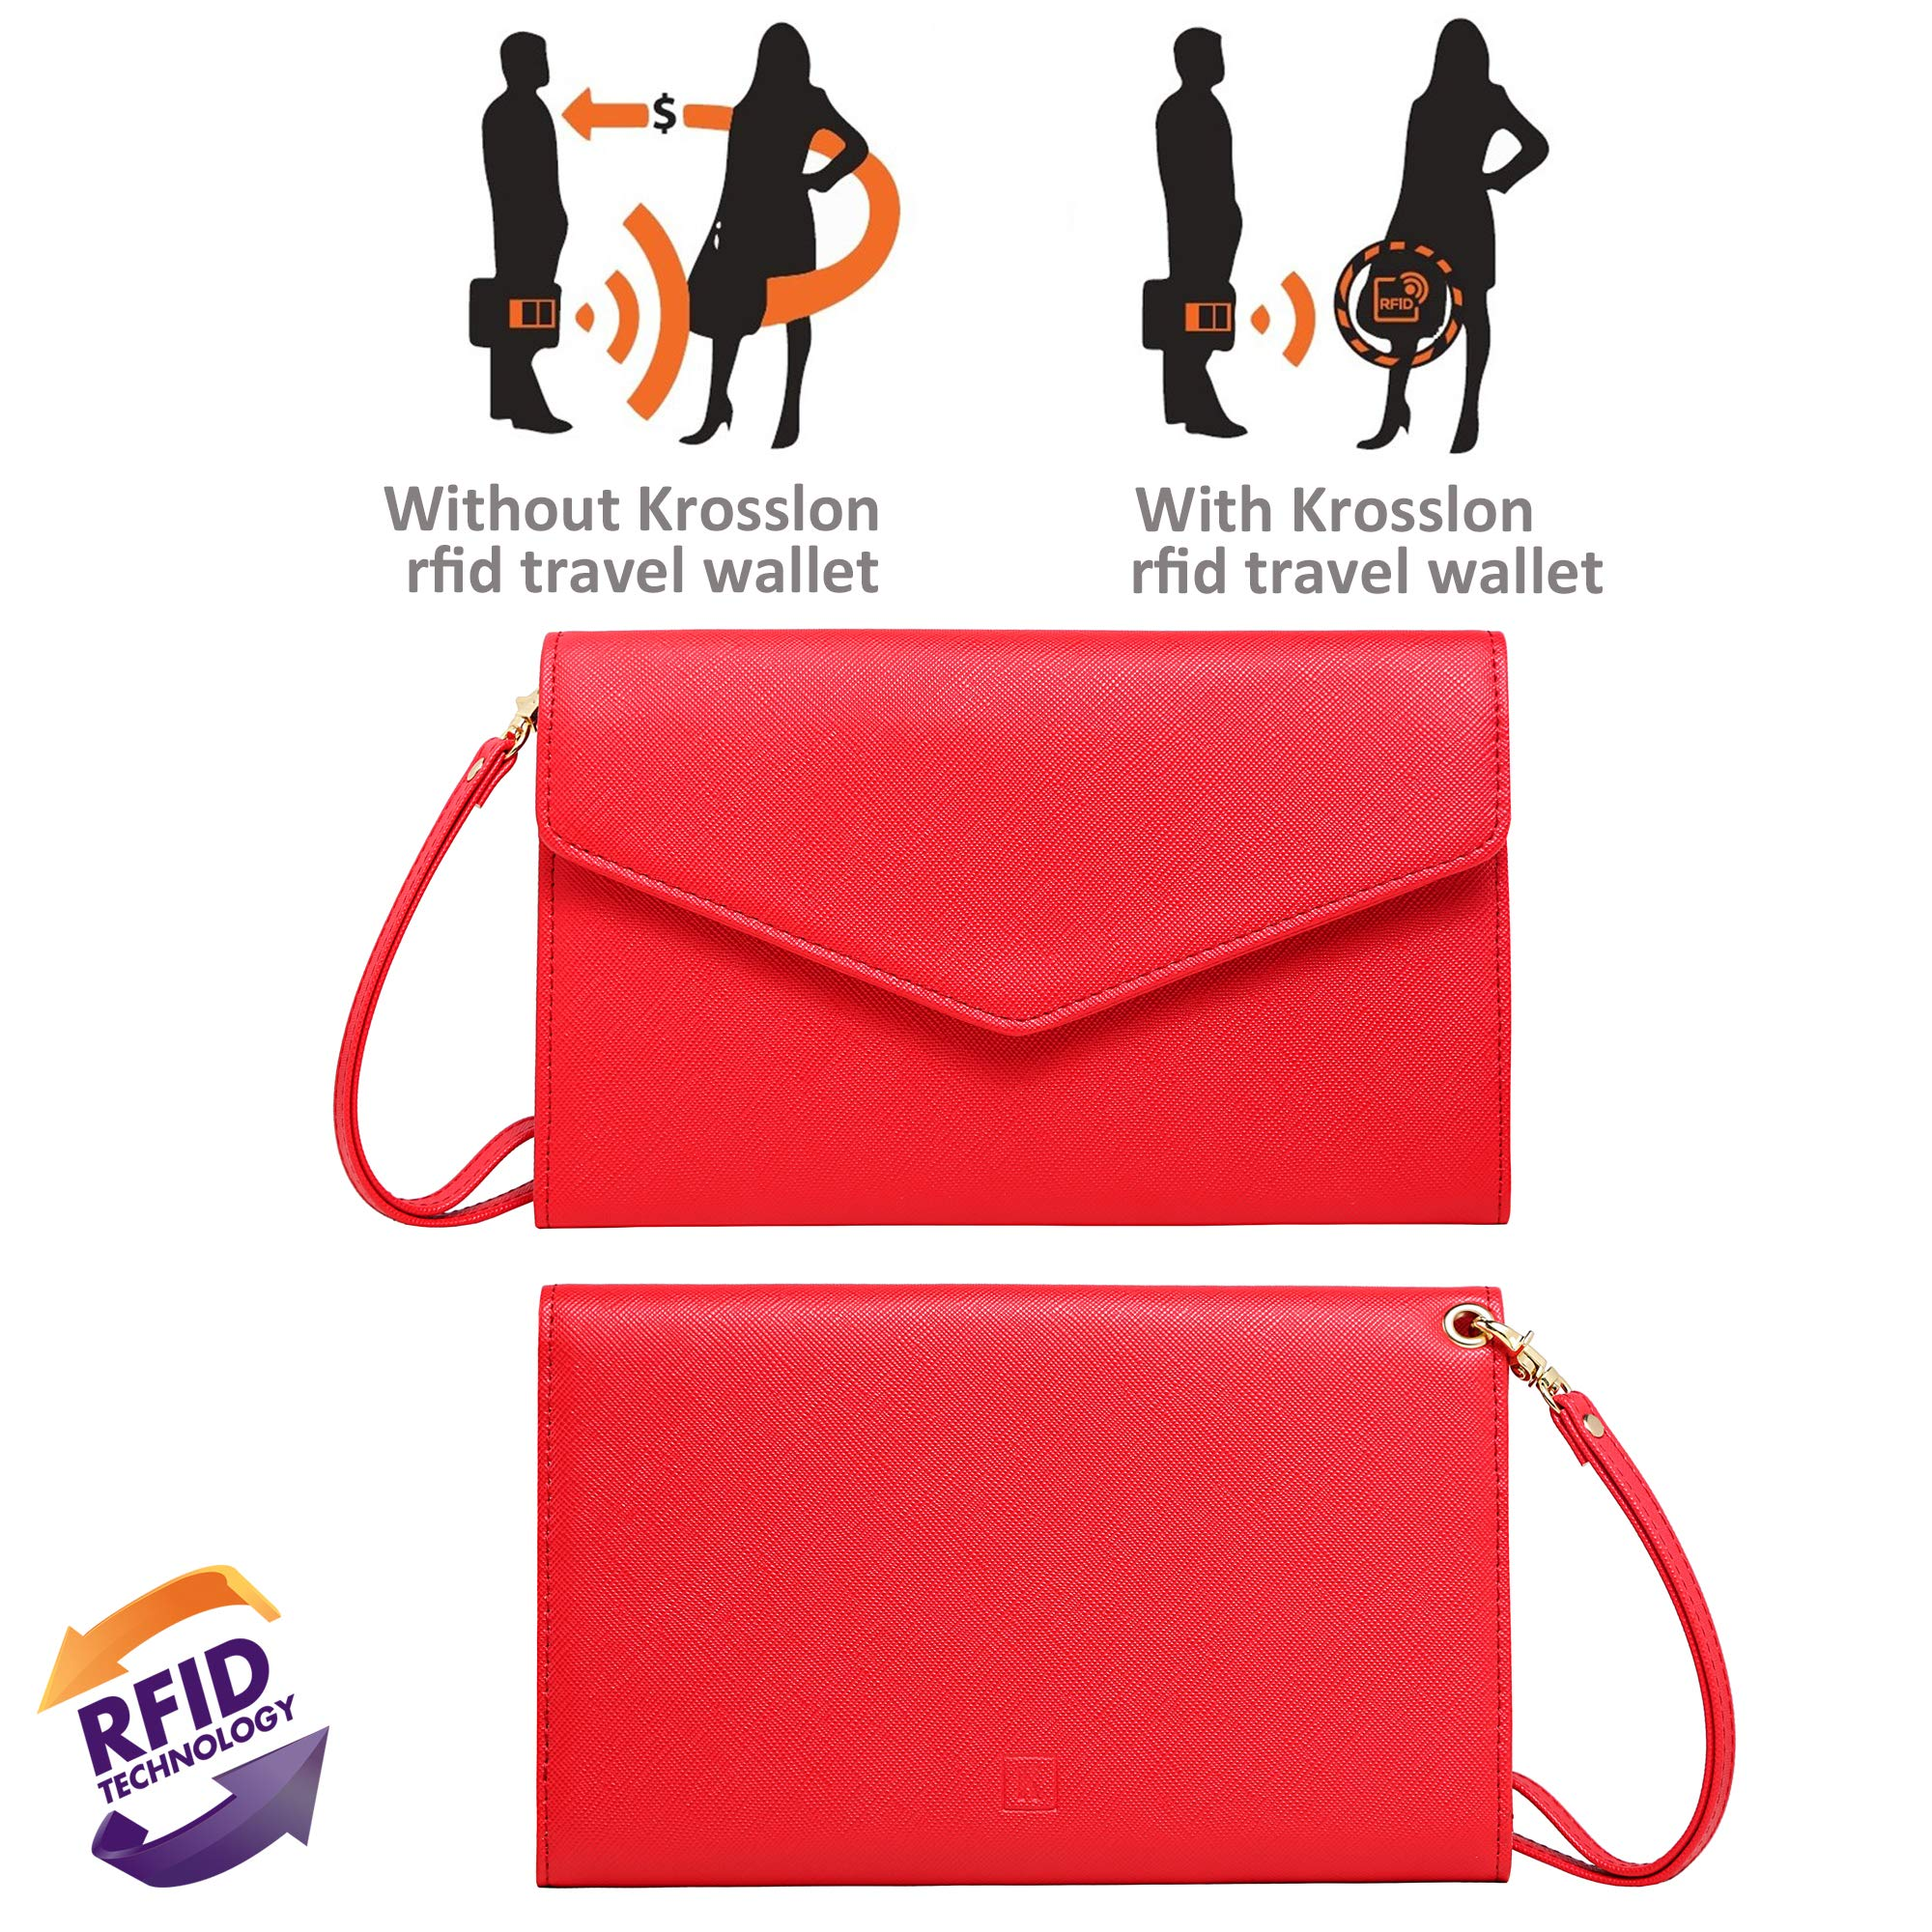 Krosslon Travel Passport Wallet for Women Rfid Wristlet Slim Family Document Holder, 11# Agate Red by KROSSLON (Image #3)